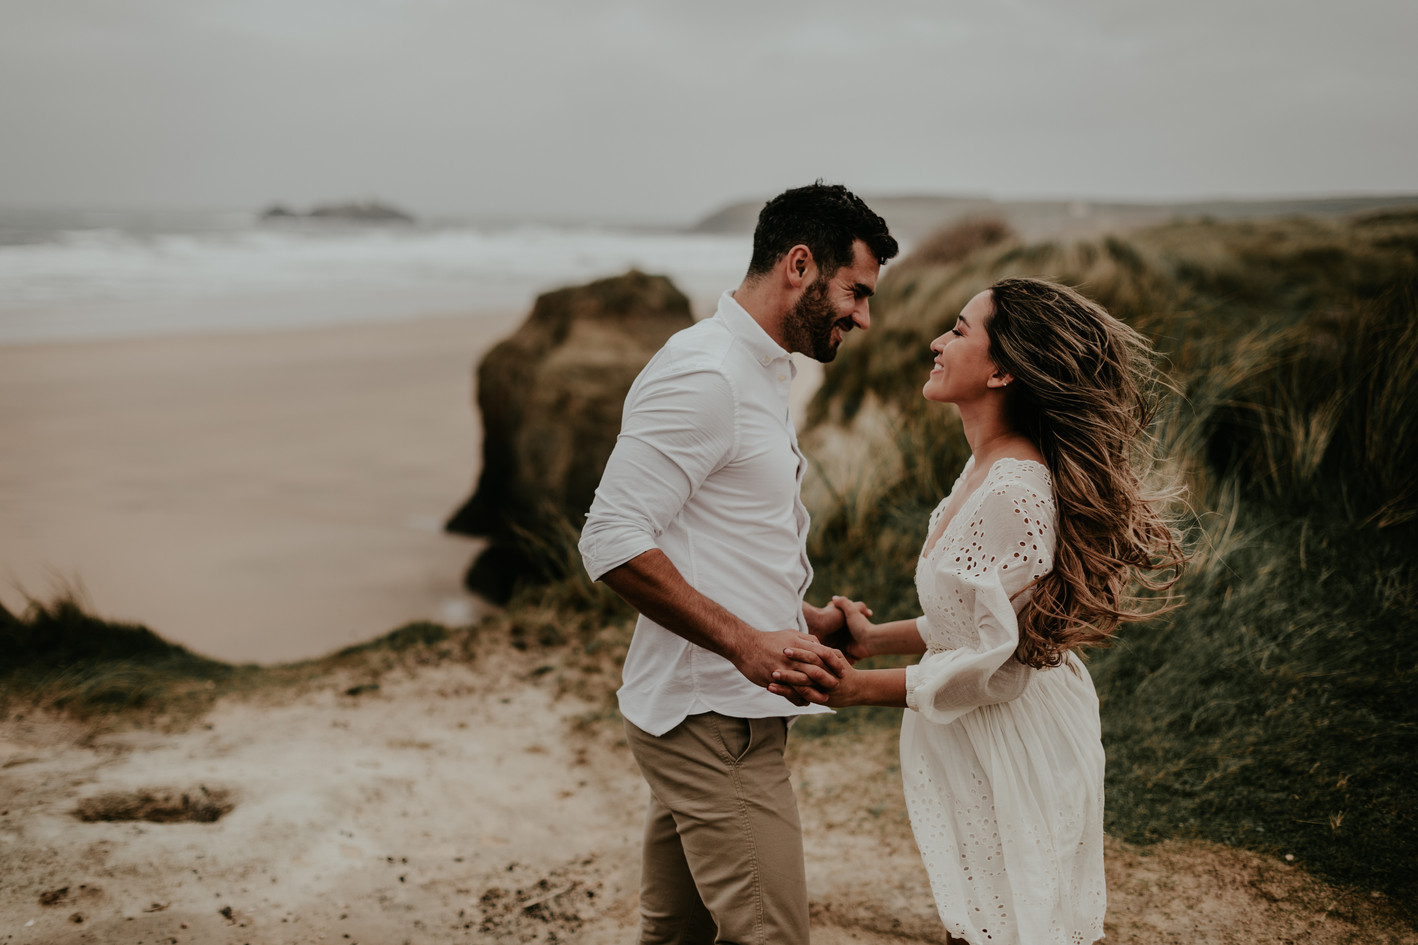 cornwall-engagement-wedding-photography-